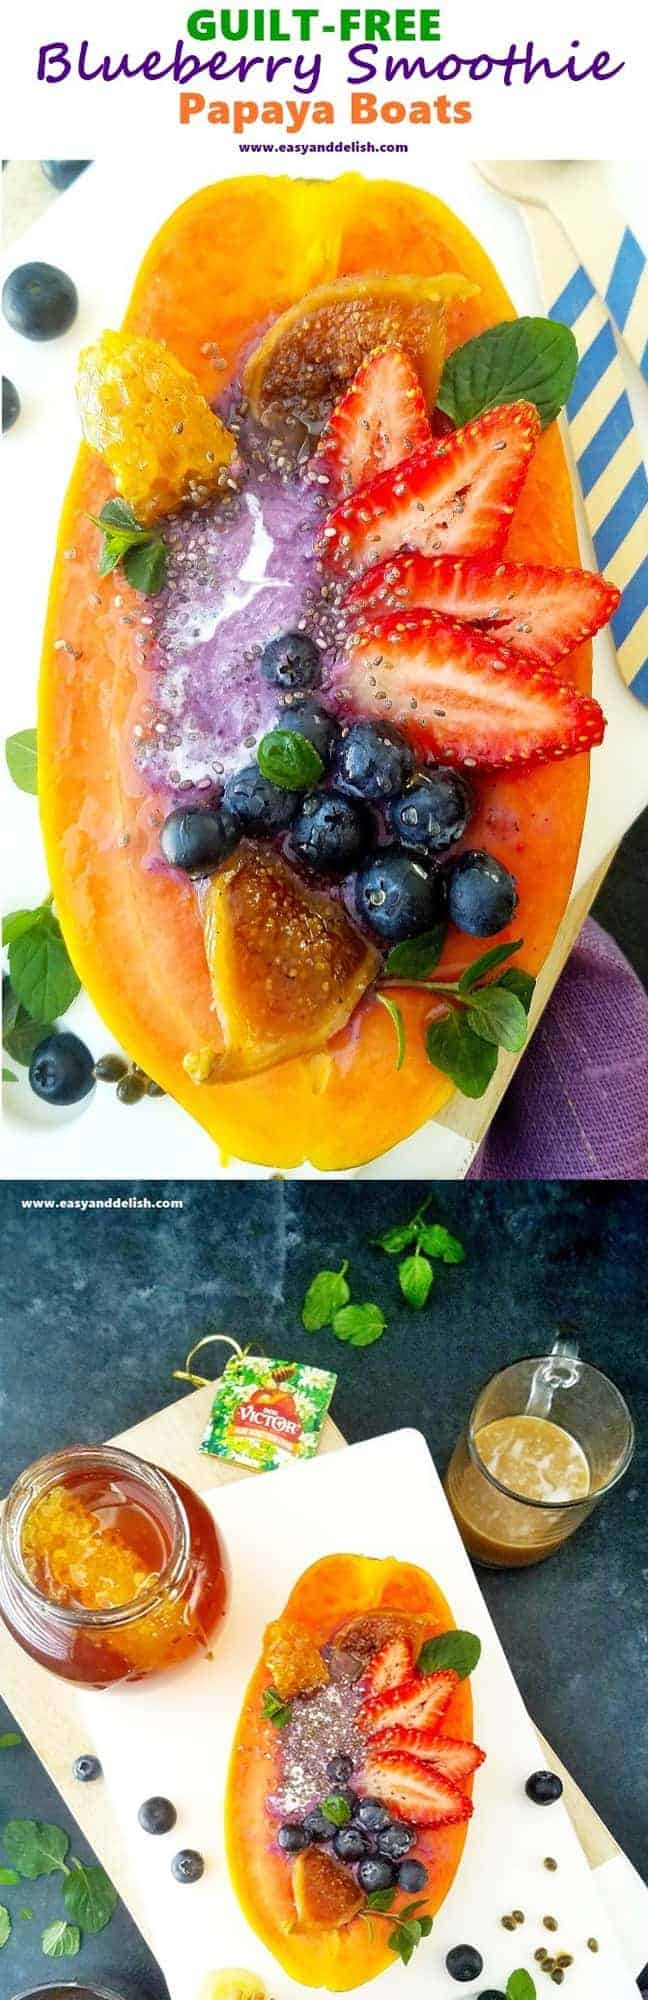 collage of blueberry smoothie papaya boats